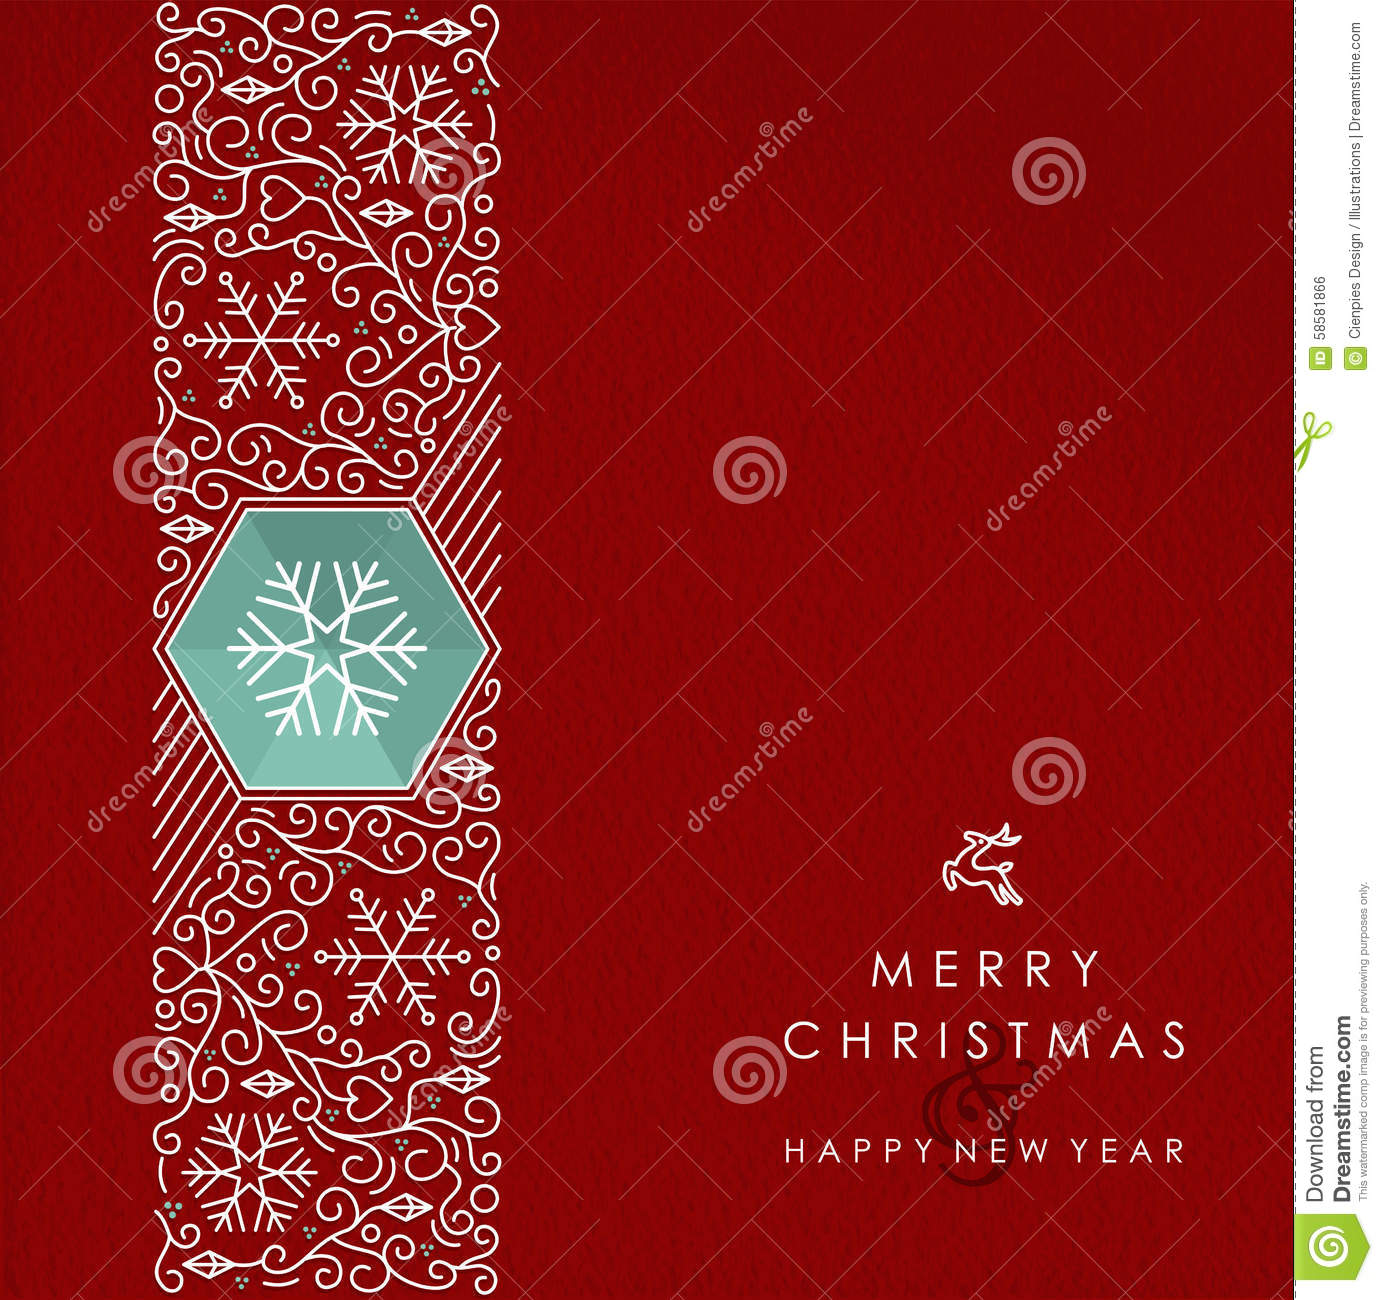 merry christmas and happy new year monogram card